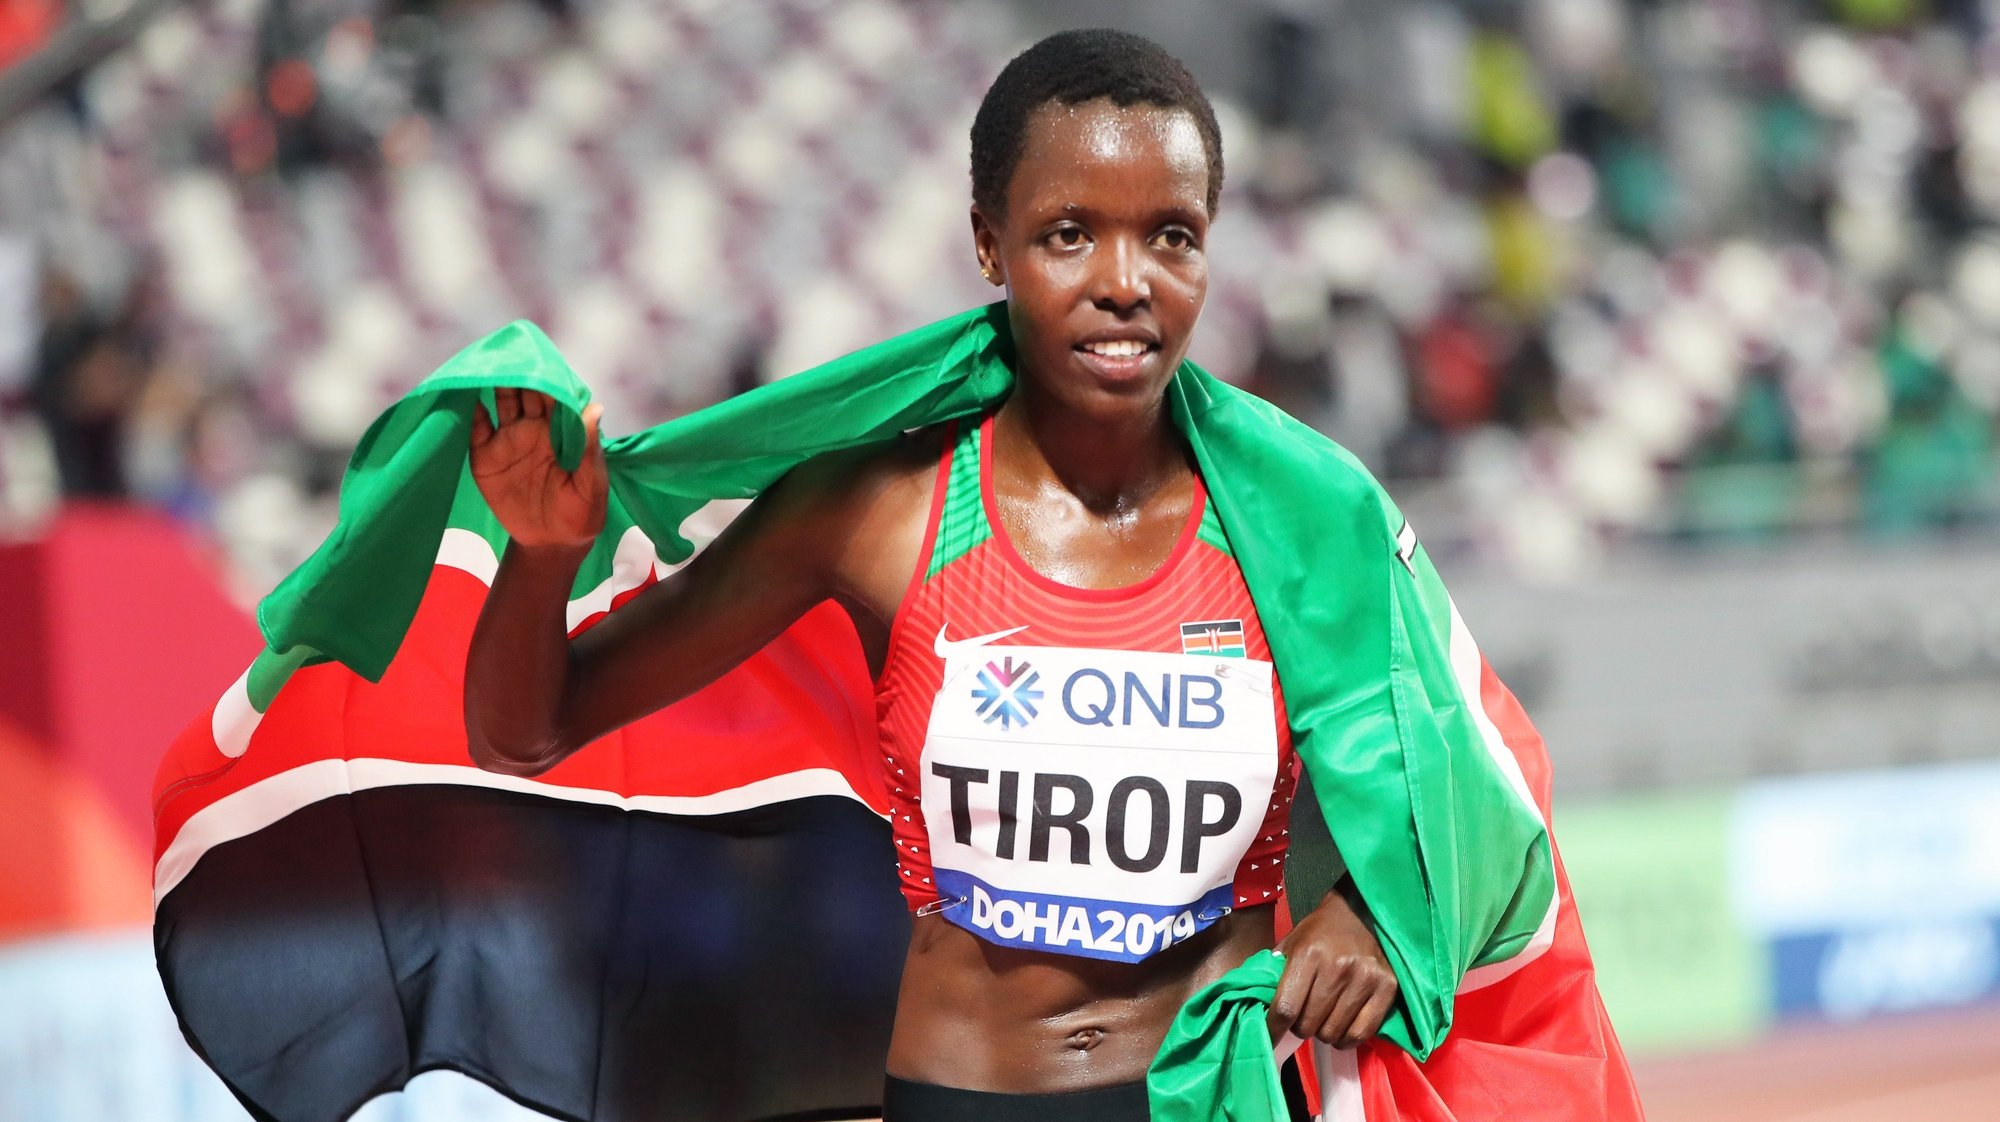 epa07878182 Agnes Jebet Tirop of Kenya celebrates after taking the third place in the women's 10,000m final during the IAAF World Athletics Championships 2019 at the Khalifa Stadium in Doha, Qatar, 28 September 2019. EPA/ALI HAIDER